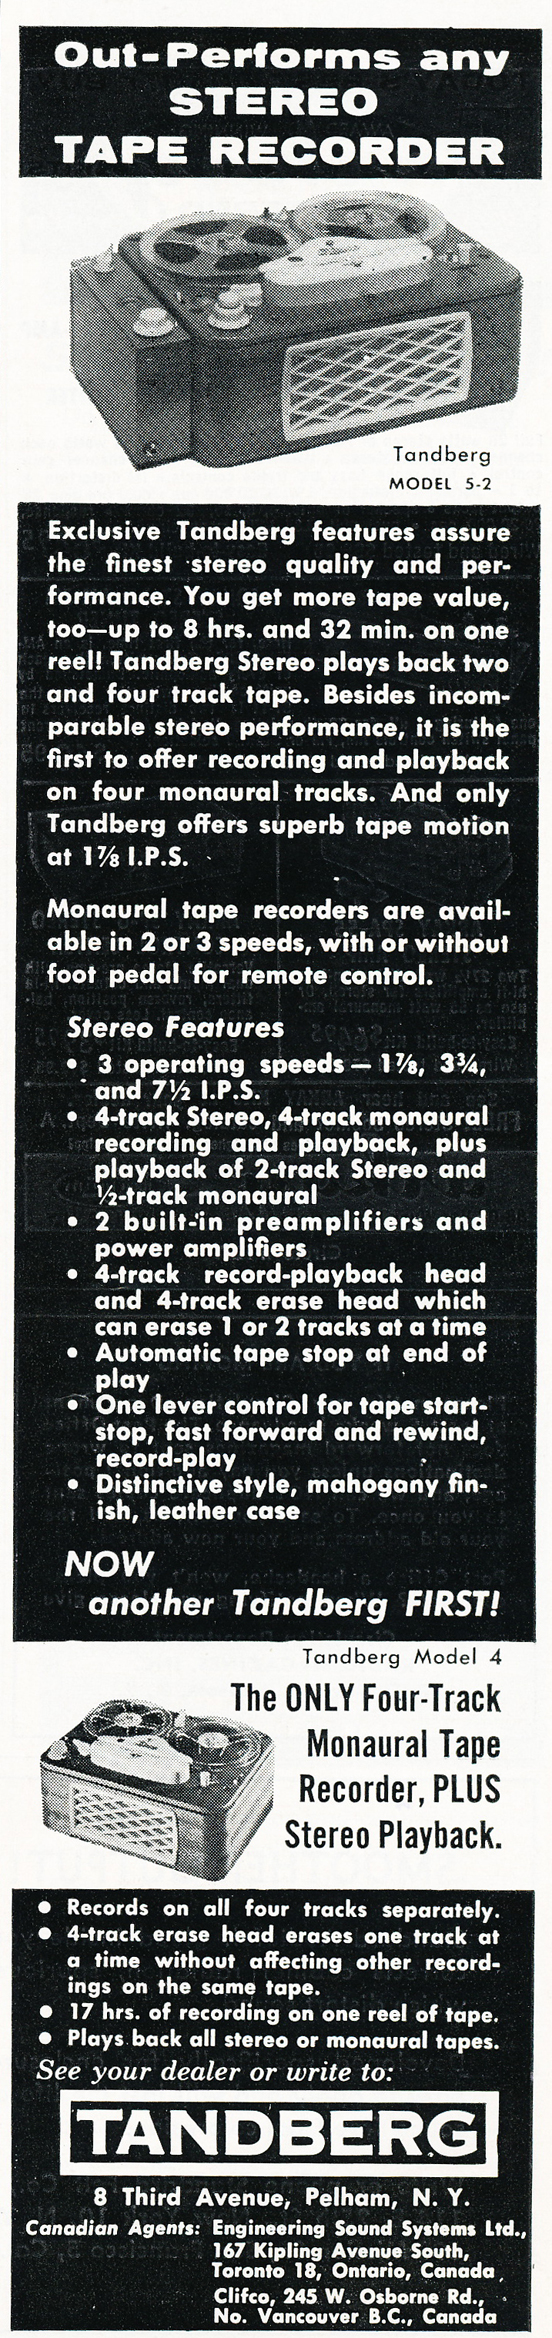 1959 ad for the Tandberg Model 5 reel to reel tape recorder in Reel2ReelTexas.com's vintage recording collection